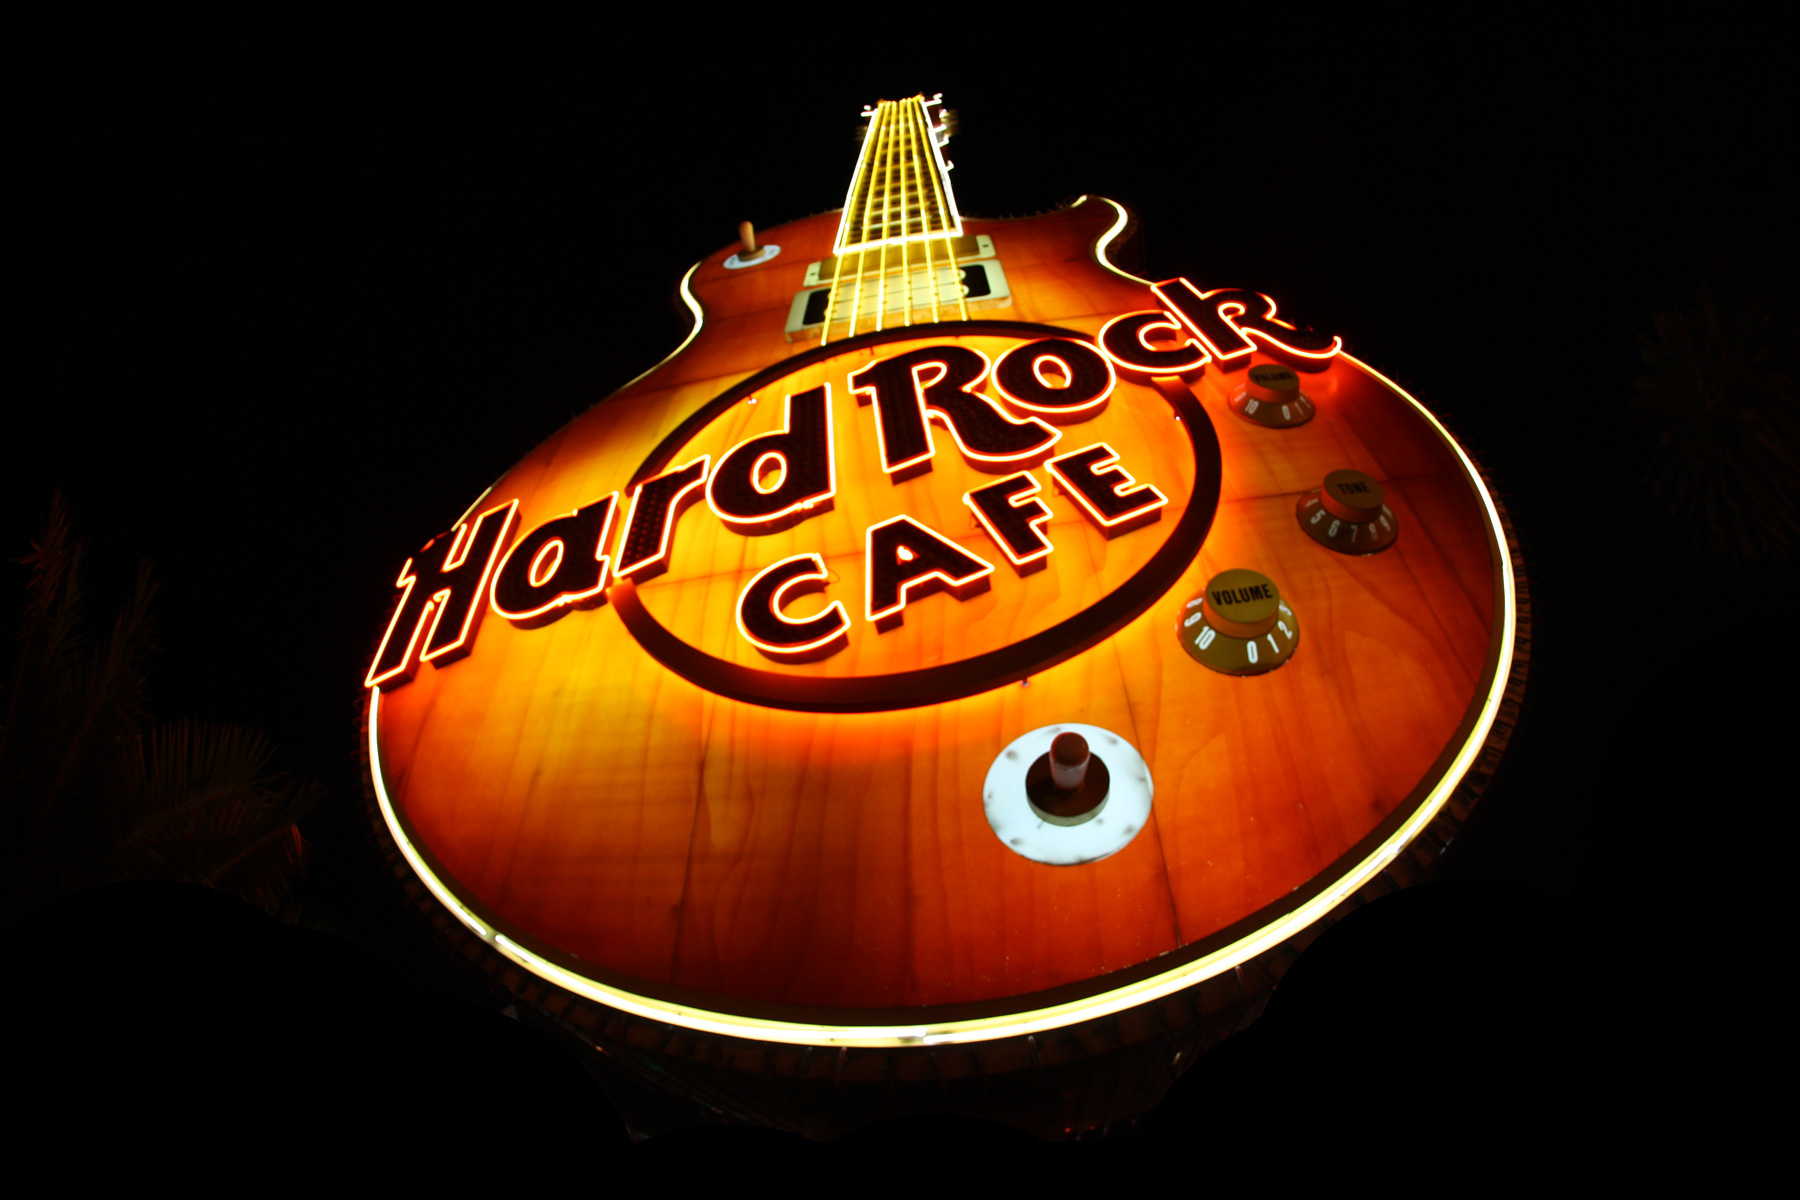 HARD ROCK LAS VEGAS